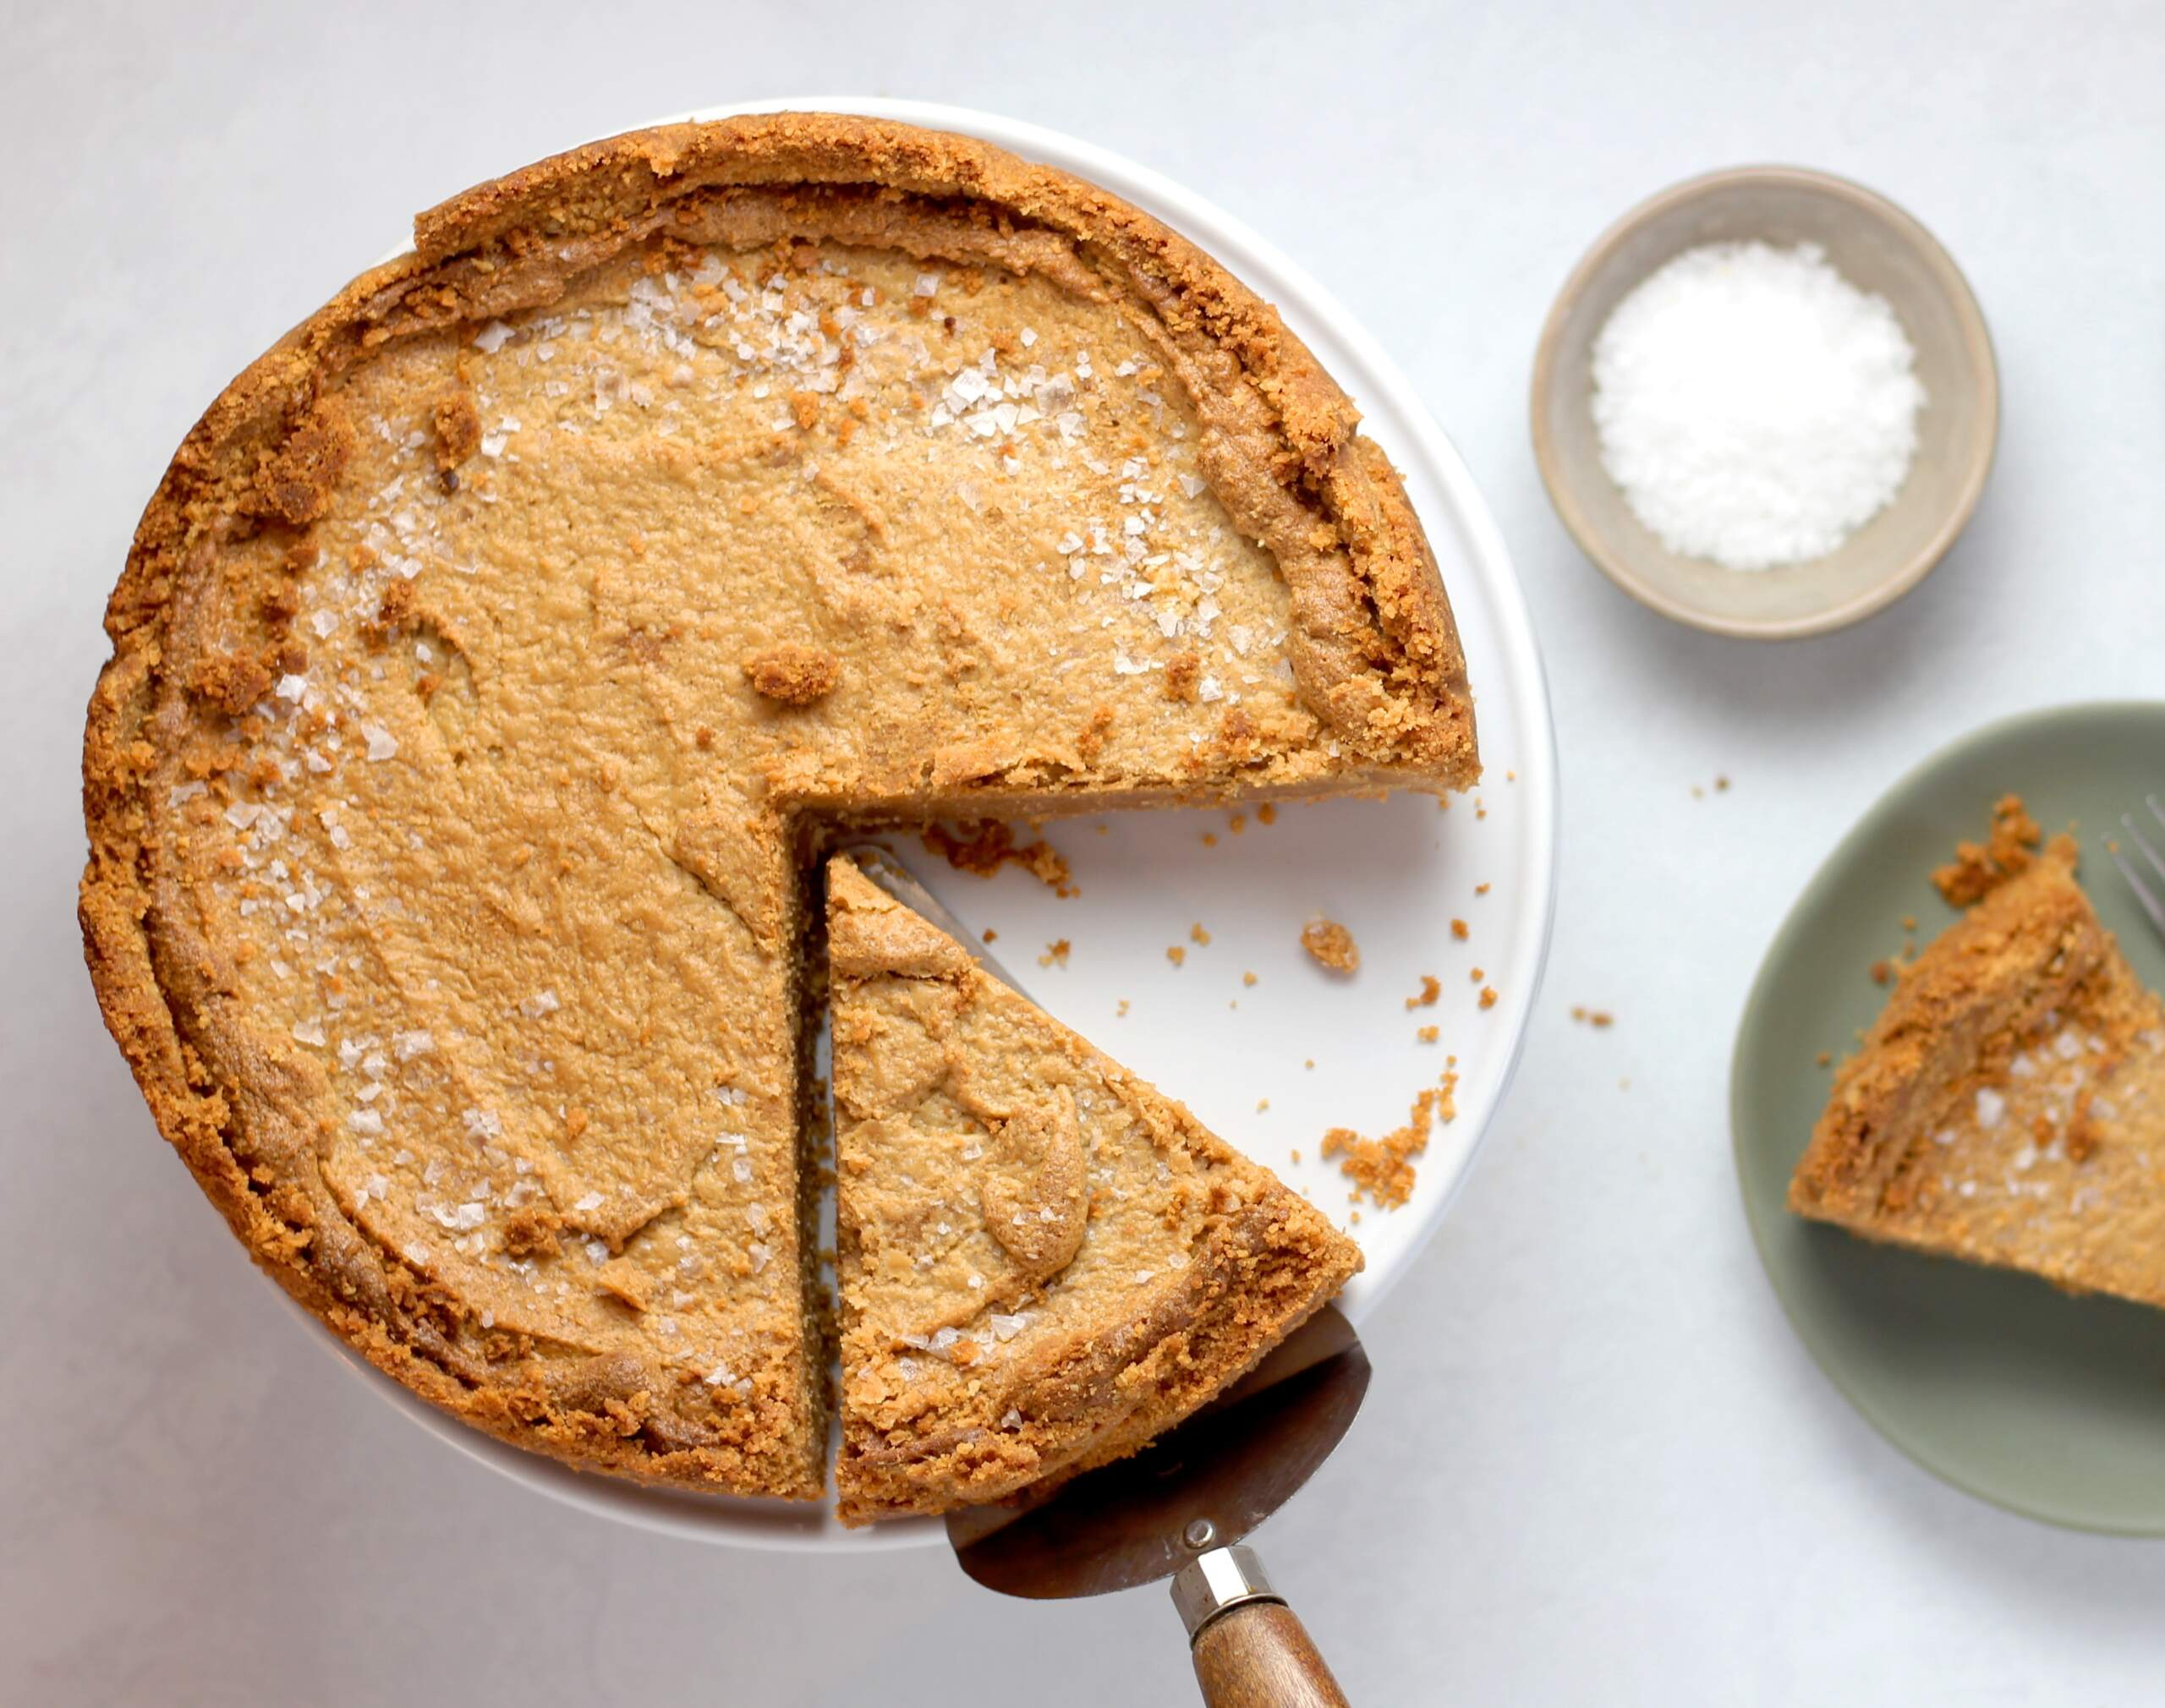 Image of pie with one slice cut out. Representation of inventory management needs.